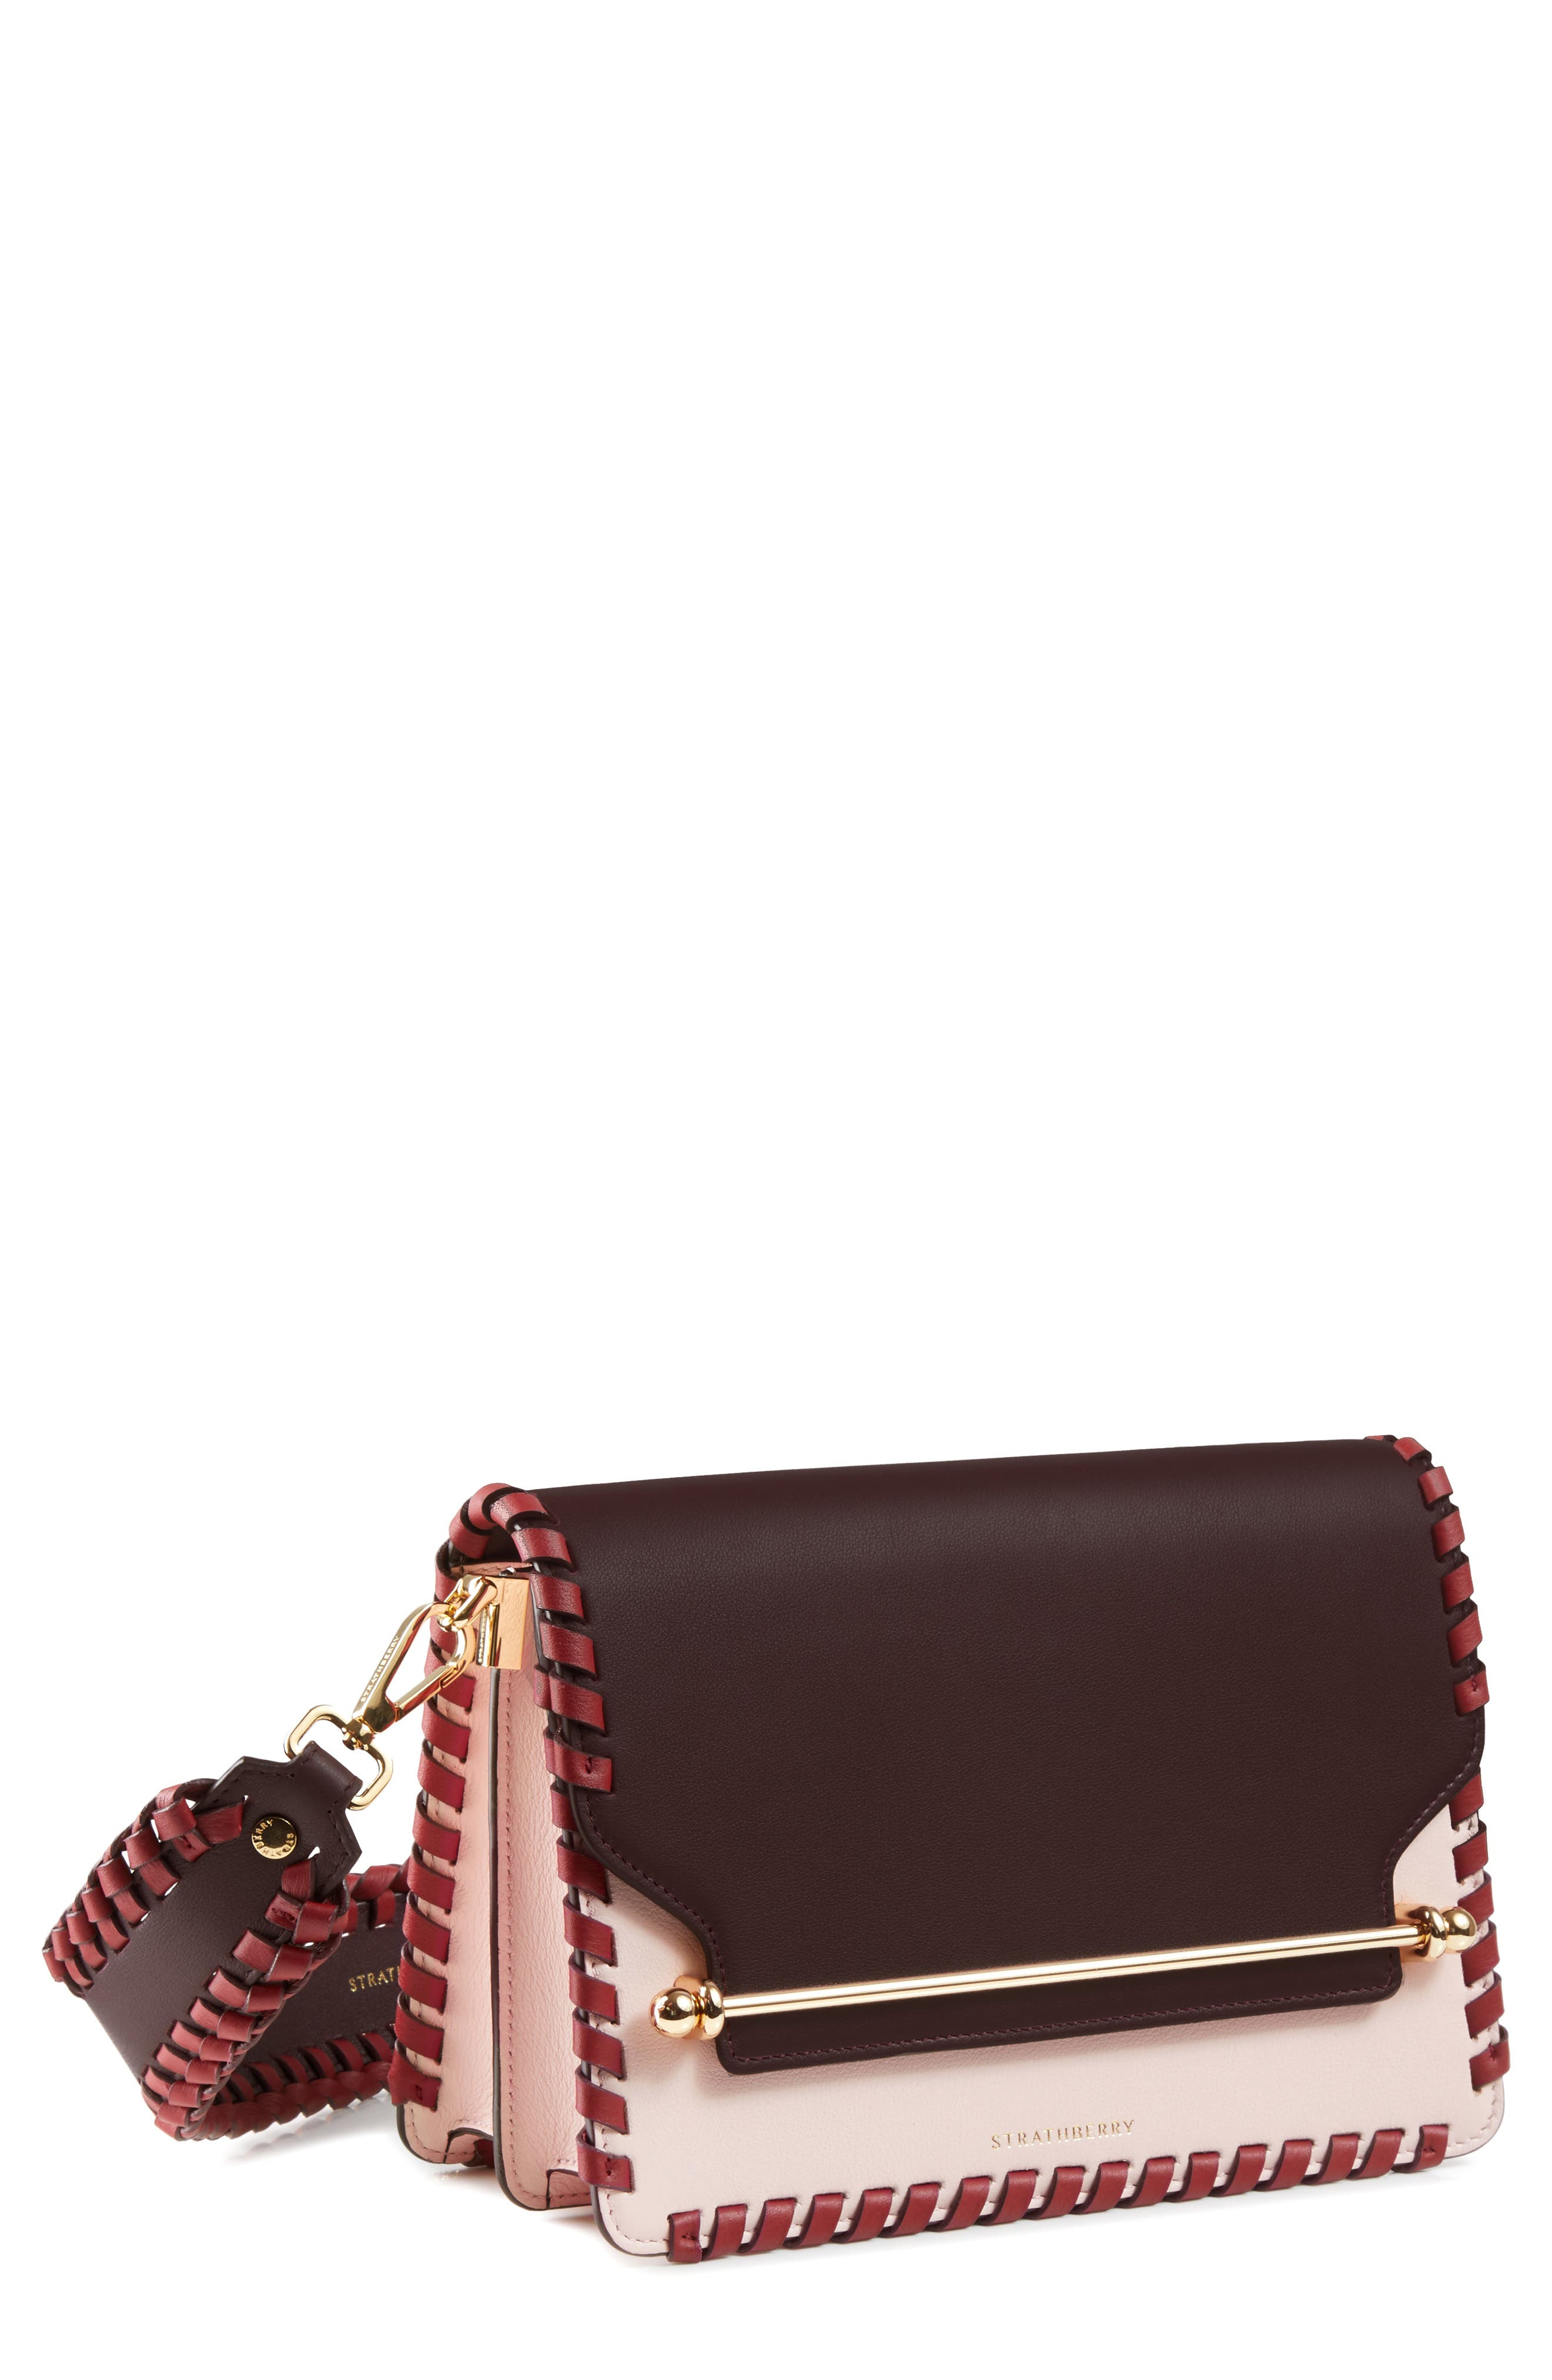 East/West Whipstitch Leather Crossbody Bag, Main, color, BURGUNDY/ BABY PINK